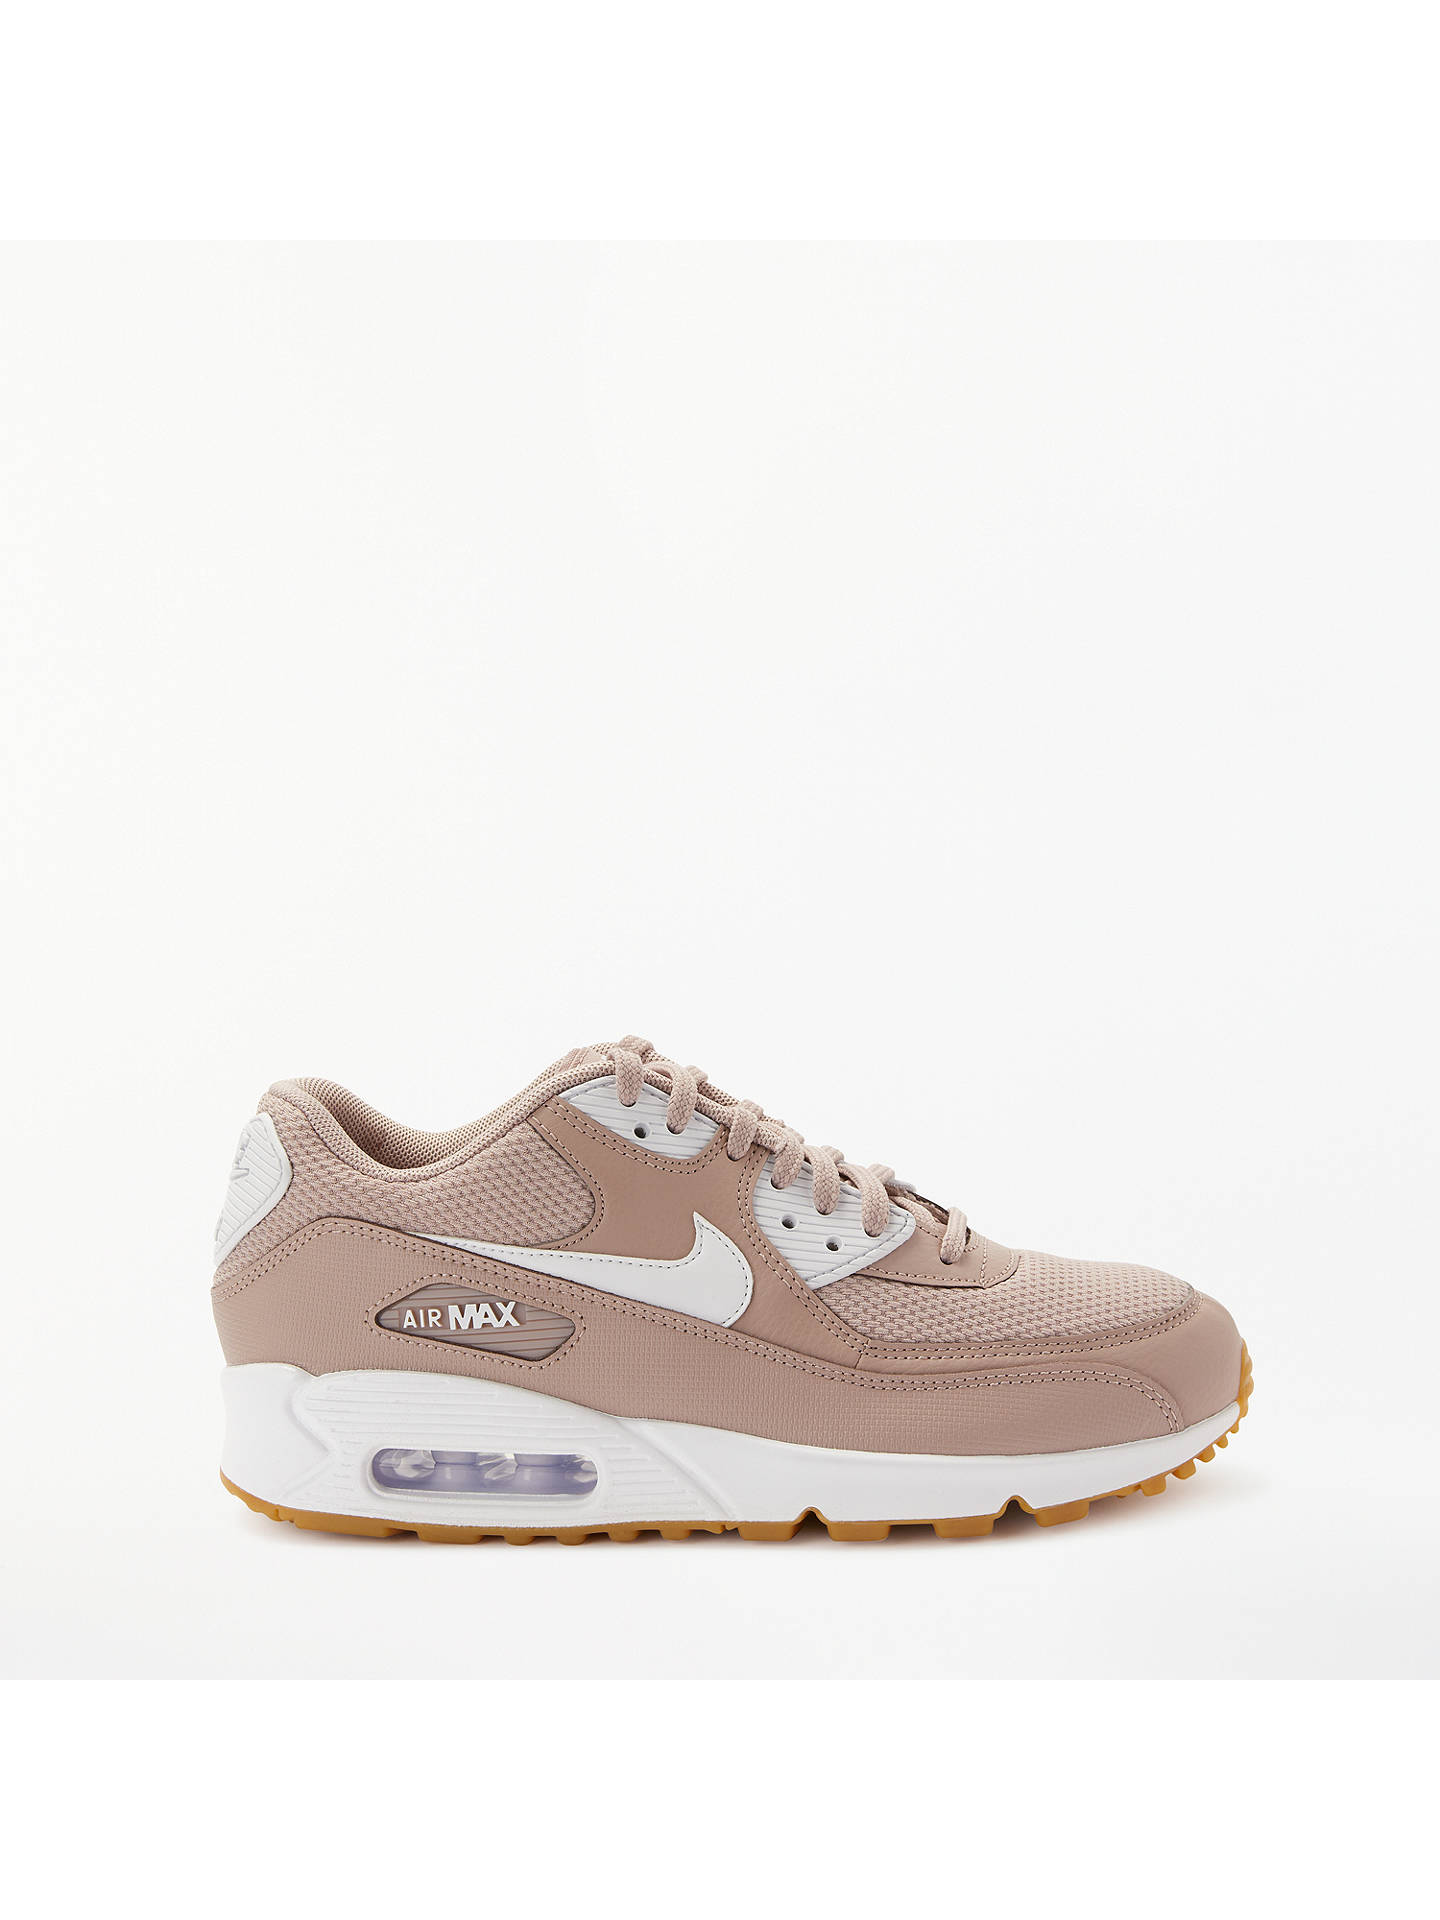 db33c98e4489d Buy Nike Air Max 90 Women's Trainers, Taupe/White, 4 Online at johnlewis ...